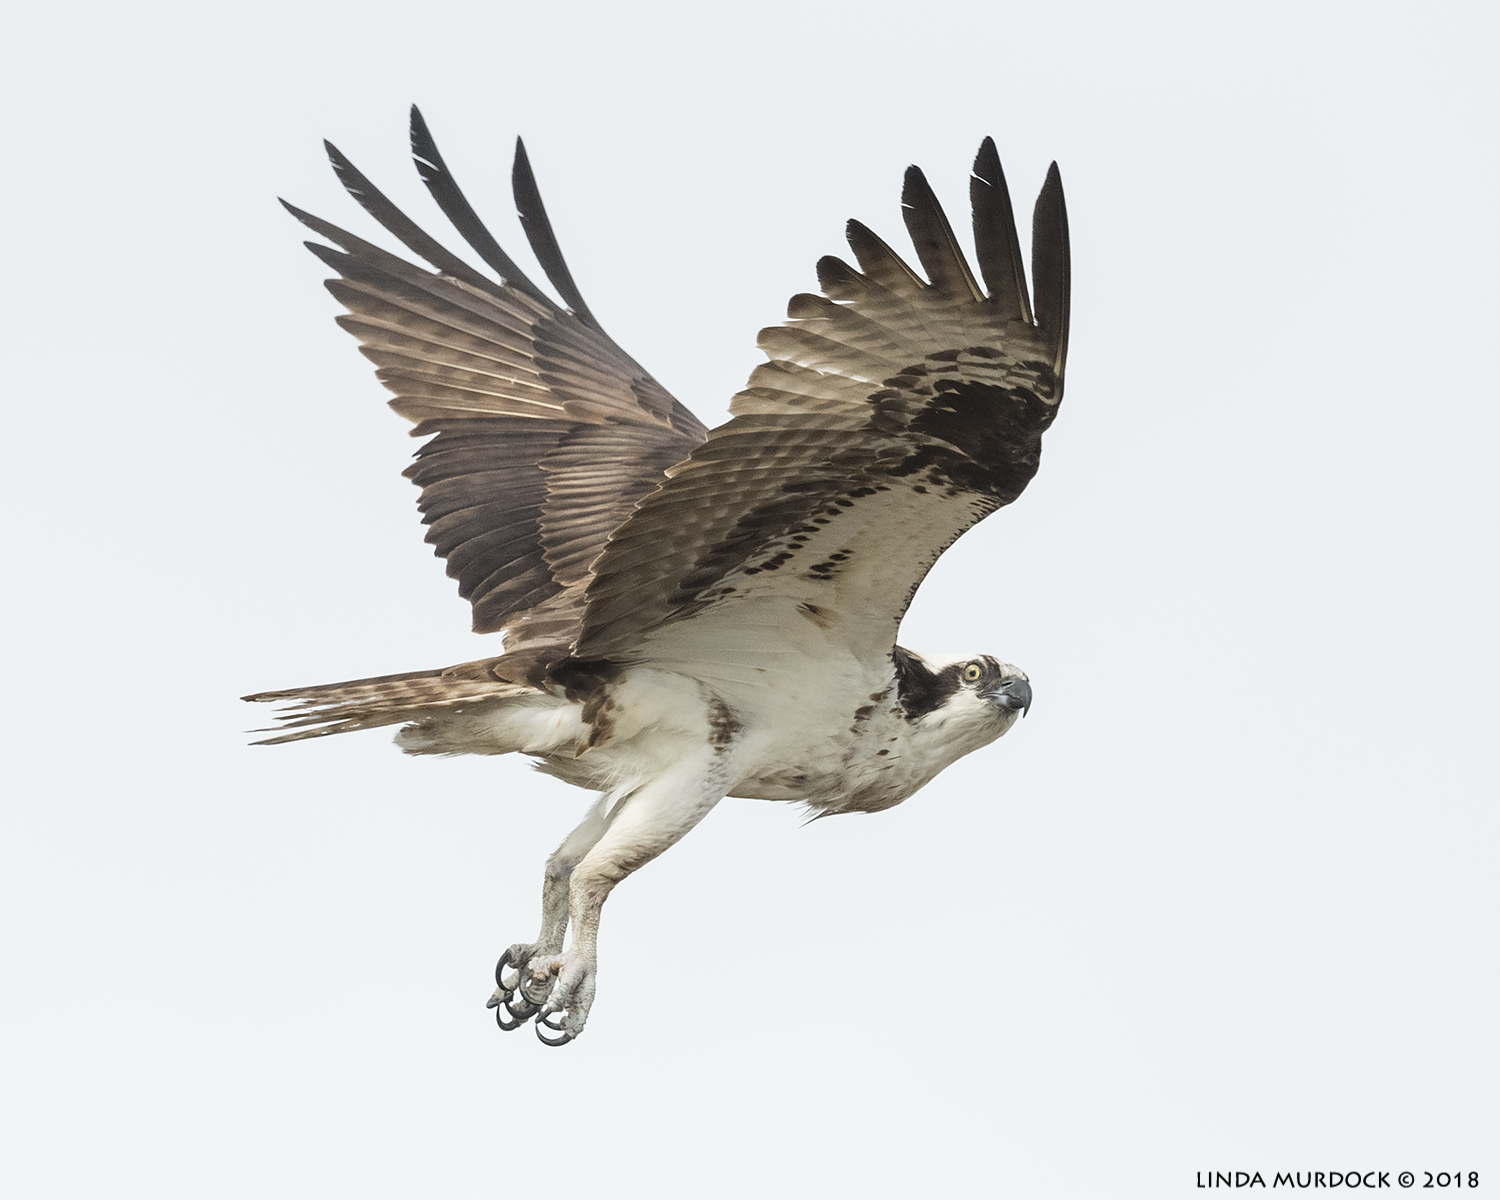 Osprey giving me the stink-eye  Nikon D850 with NIKKOR 500mm f/4E VR with Nikon 1.4x TC ~ 1/2500 sec f/6.3 ISO 1000; hand-held